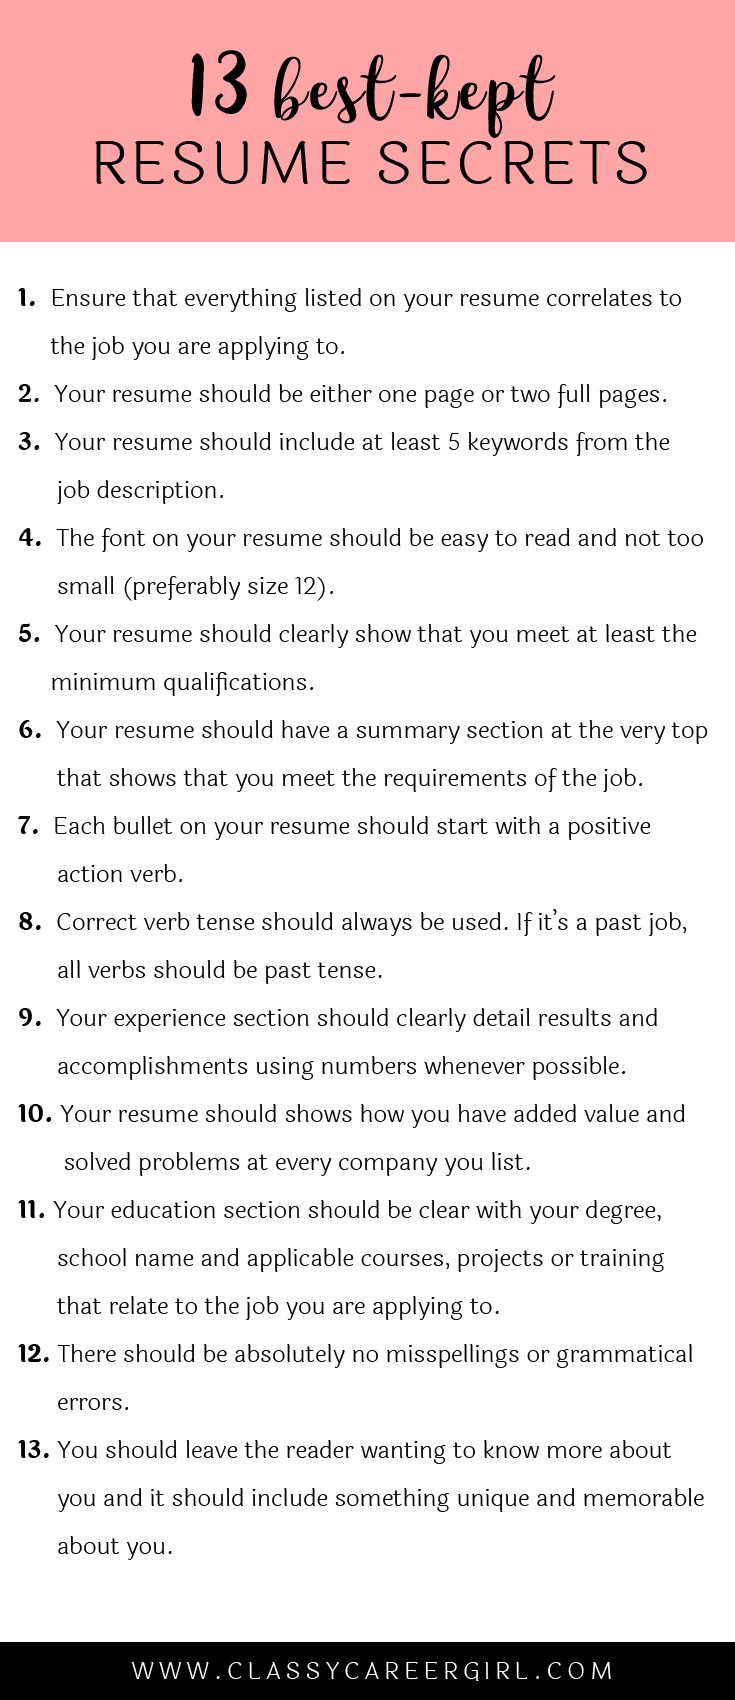 Opposenewapstandardsus  Picturesque  Ideas About Resume On Pinterest  Cv Format Resume Cv And  With Fair Some Hiring Managers Will Toss Your Resume Out If You Dont Know These  With Adorable Management Skills Resume Also Blue Sky Resumes In Addition Microsoft Resume Templates Free And Designer Resumes As Well As How To Upload A Resume Additionally Pastor Resume From Pinterestcom With Opposenewapstandardsus  Fair  Ideas About Resume On Pinterest  Cv Format Resume Cv And  With Adorable Some Hiring Managers Will Toss Your Resume Out If You Dont Know These  And Picturesque Management Skills Resume Also Blue Sky Resumes In Addition Microsoft Resume Templates Free From Pinterestcom